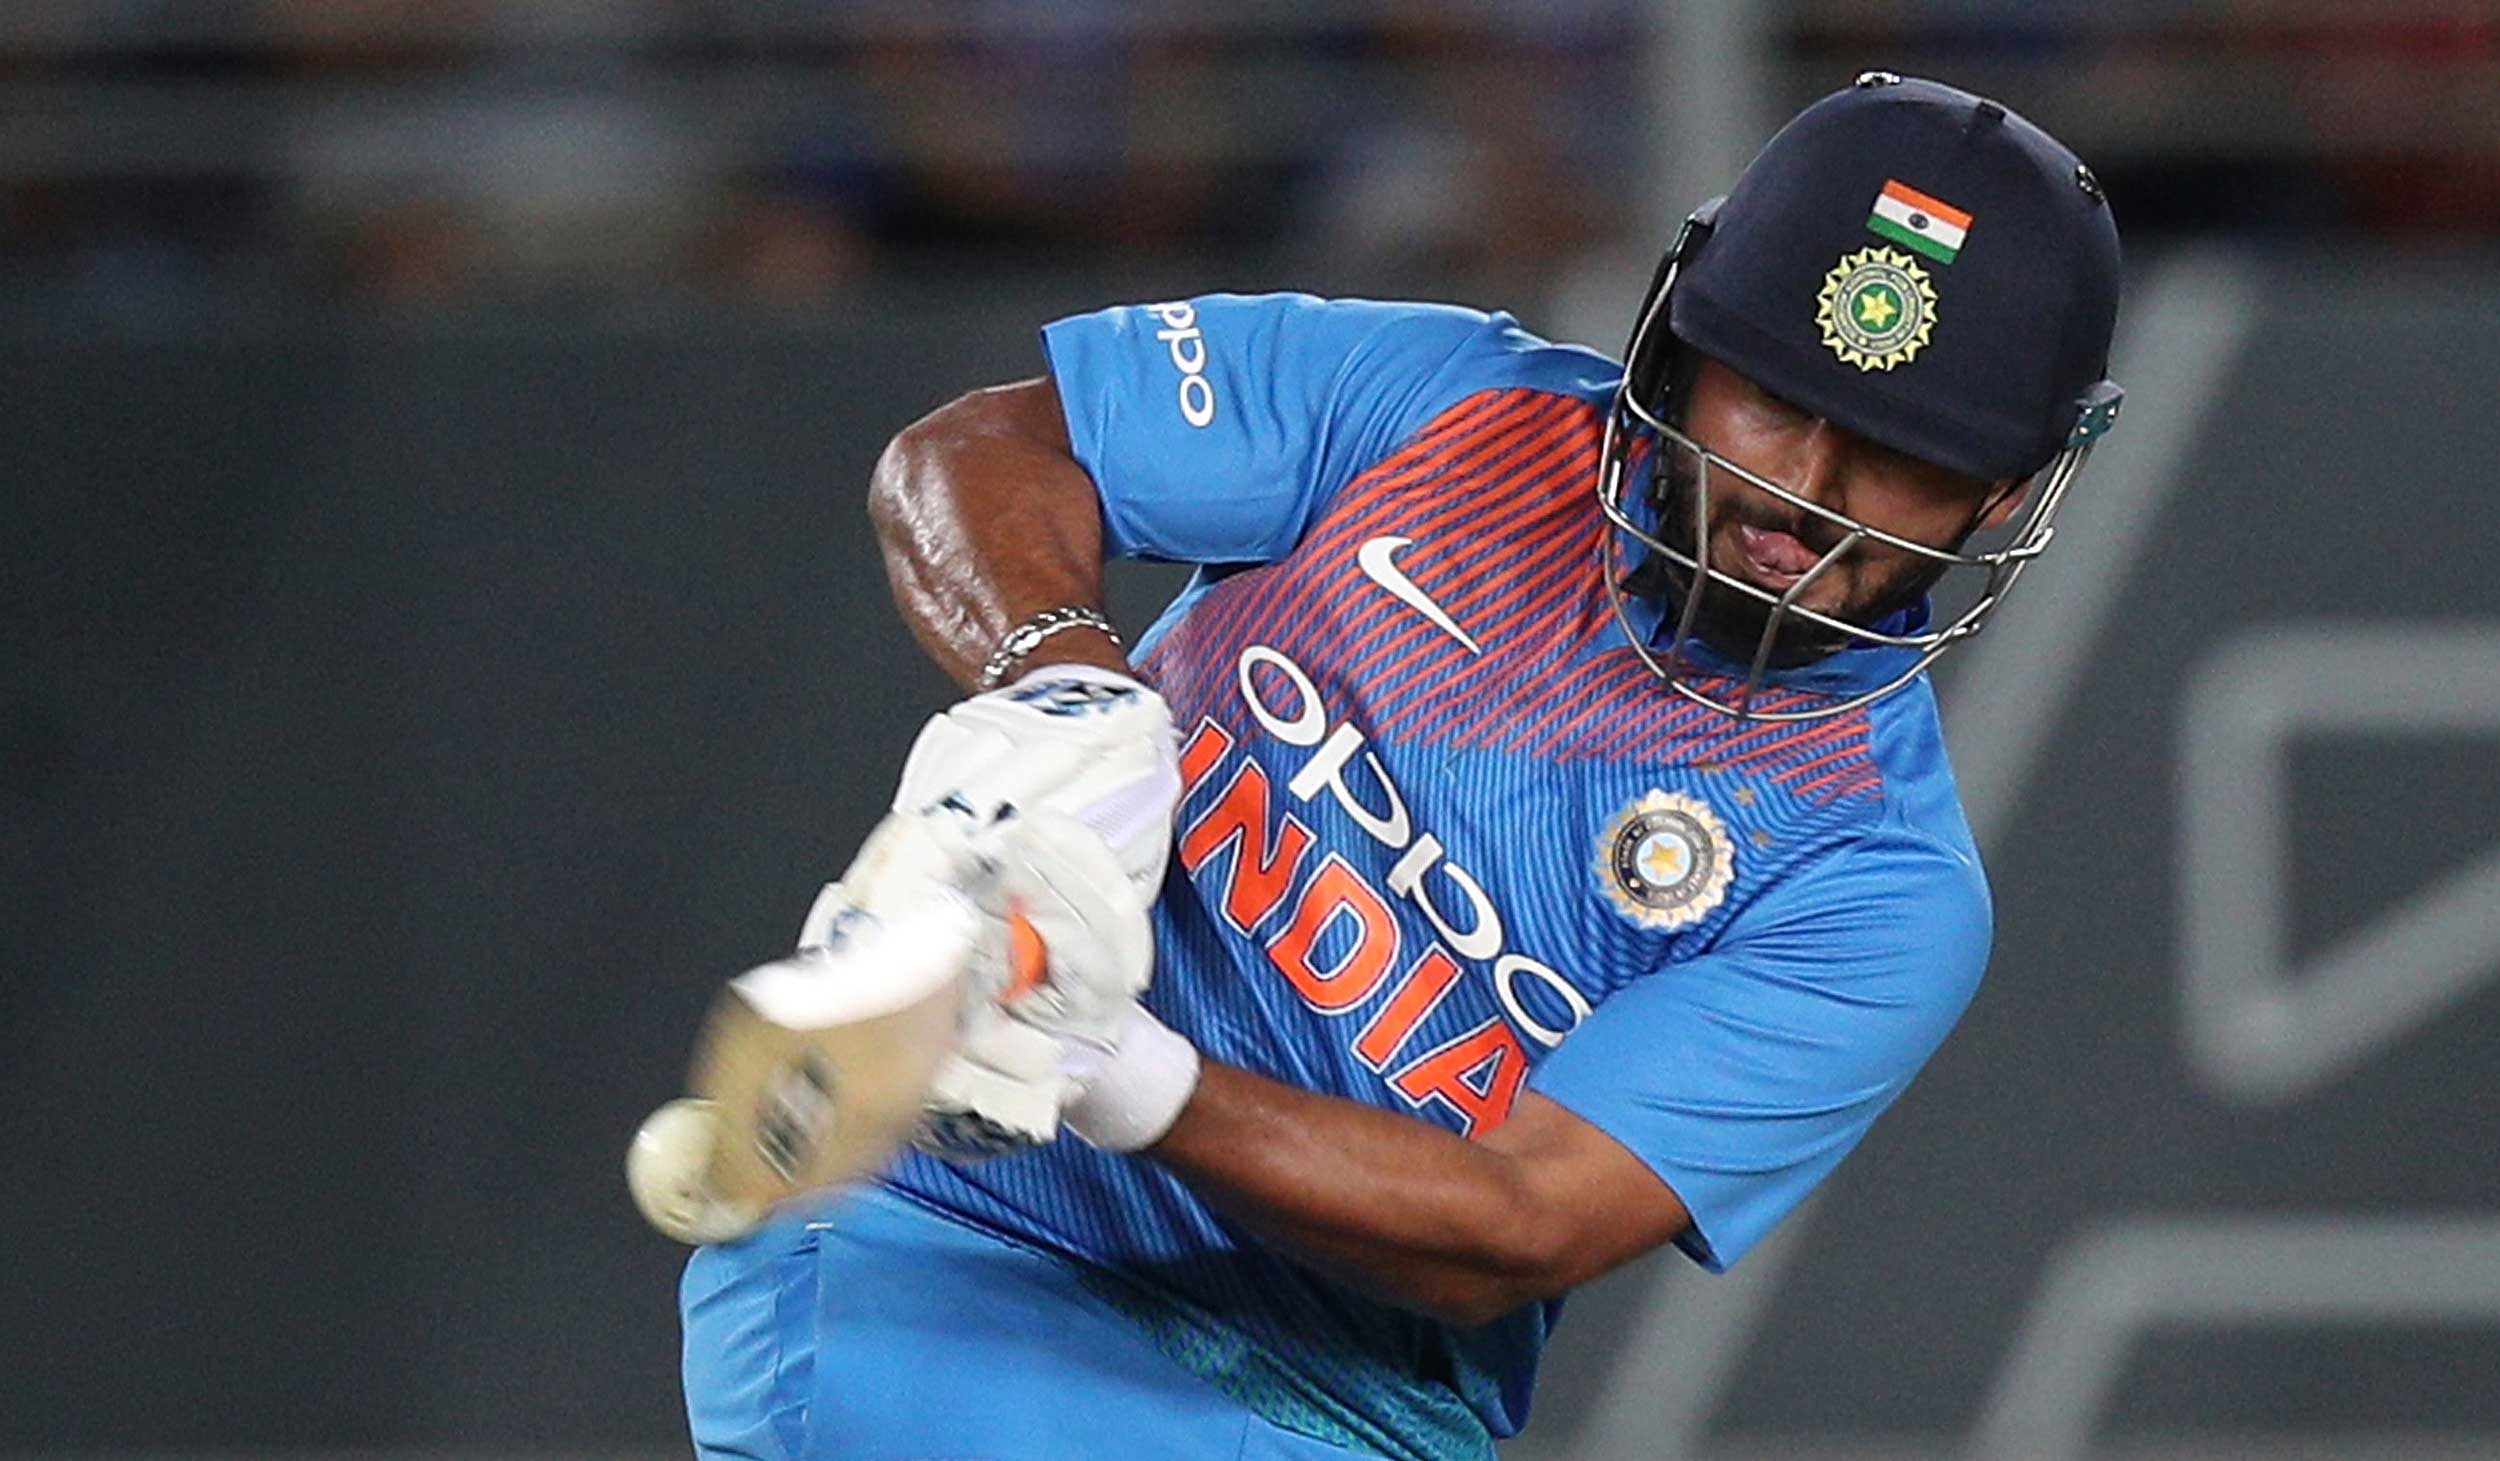 Rishabh Pant bats during the T20 match against New Zealand at Eden Park in Auckland, New Zealand, on February 8.